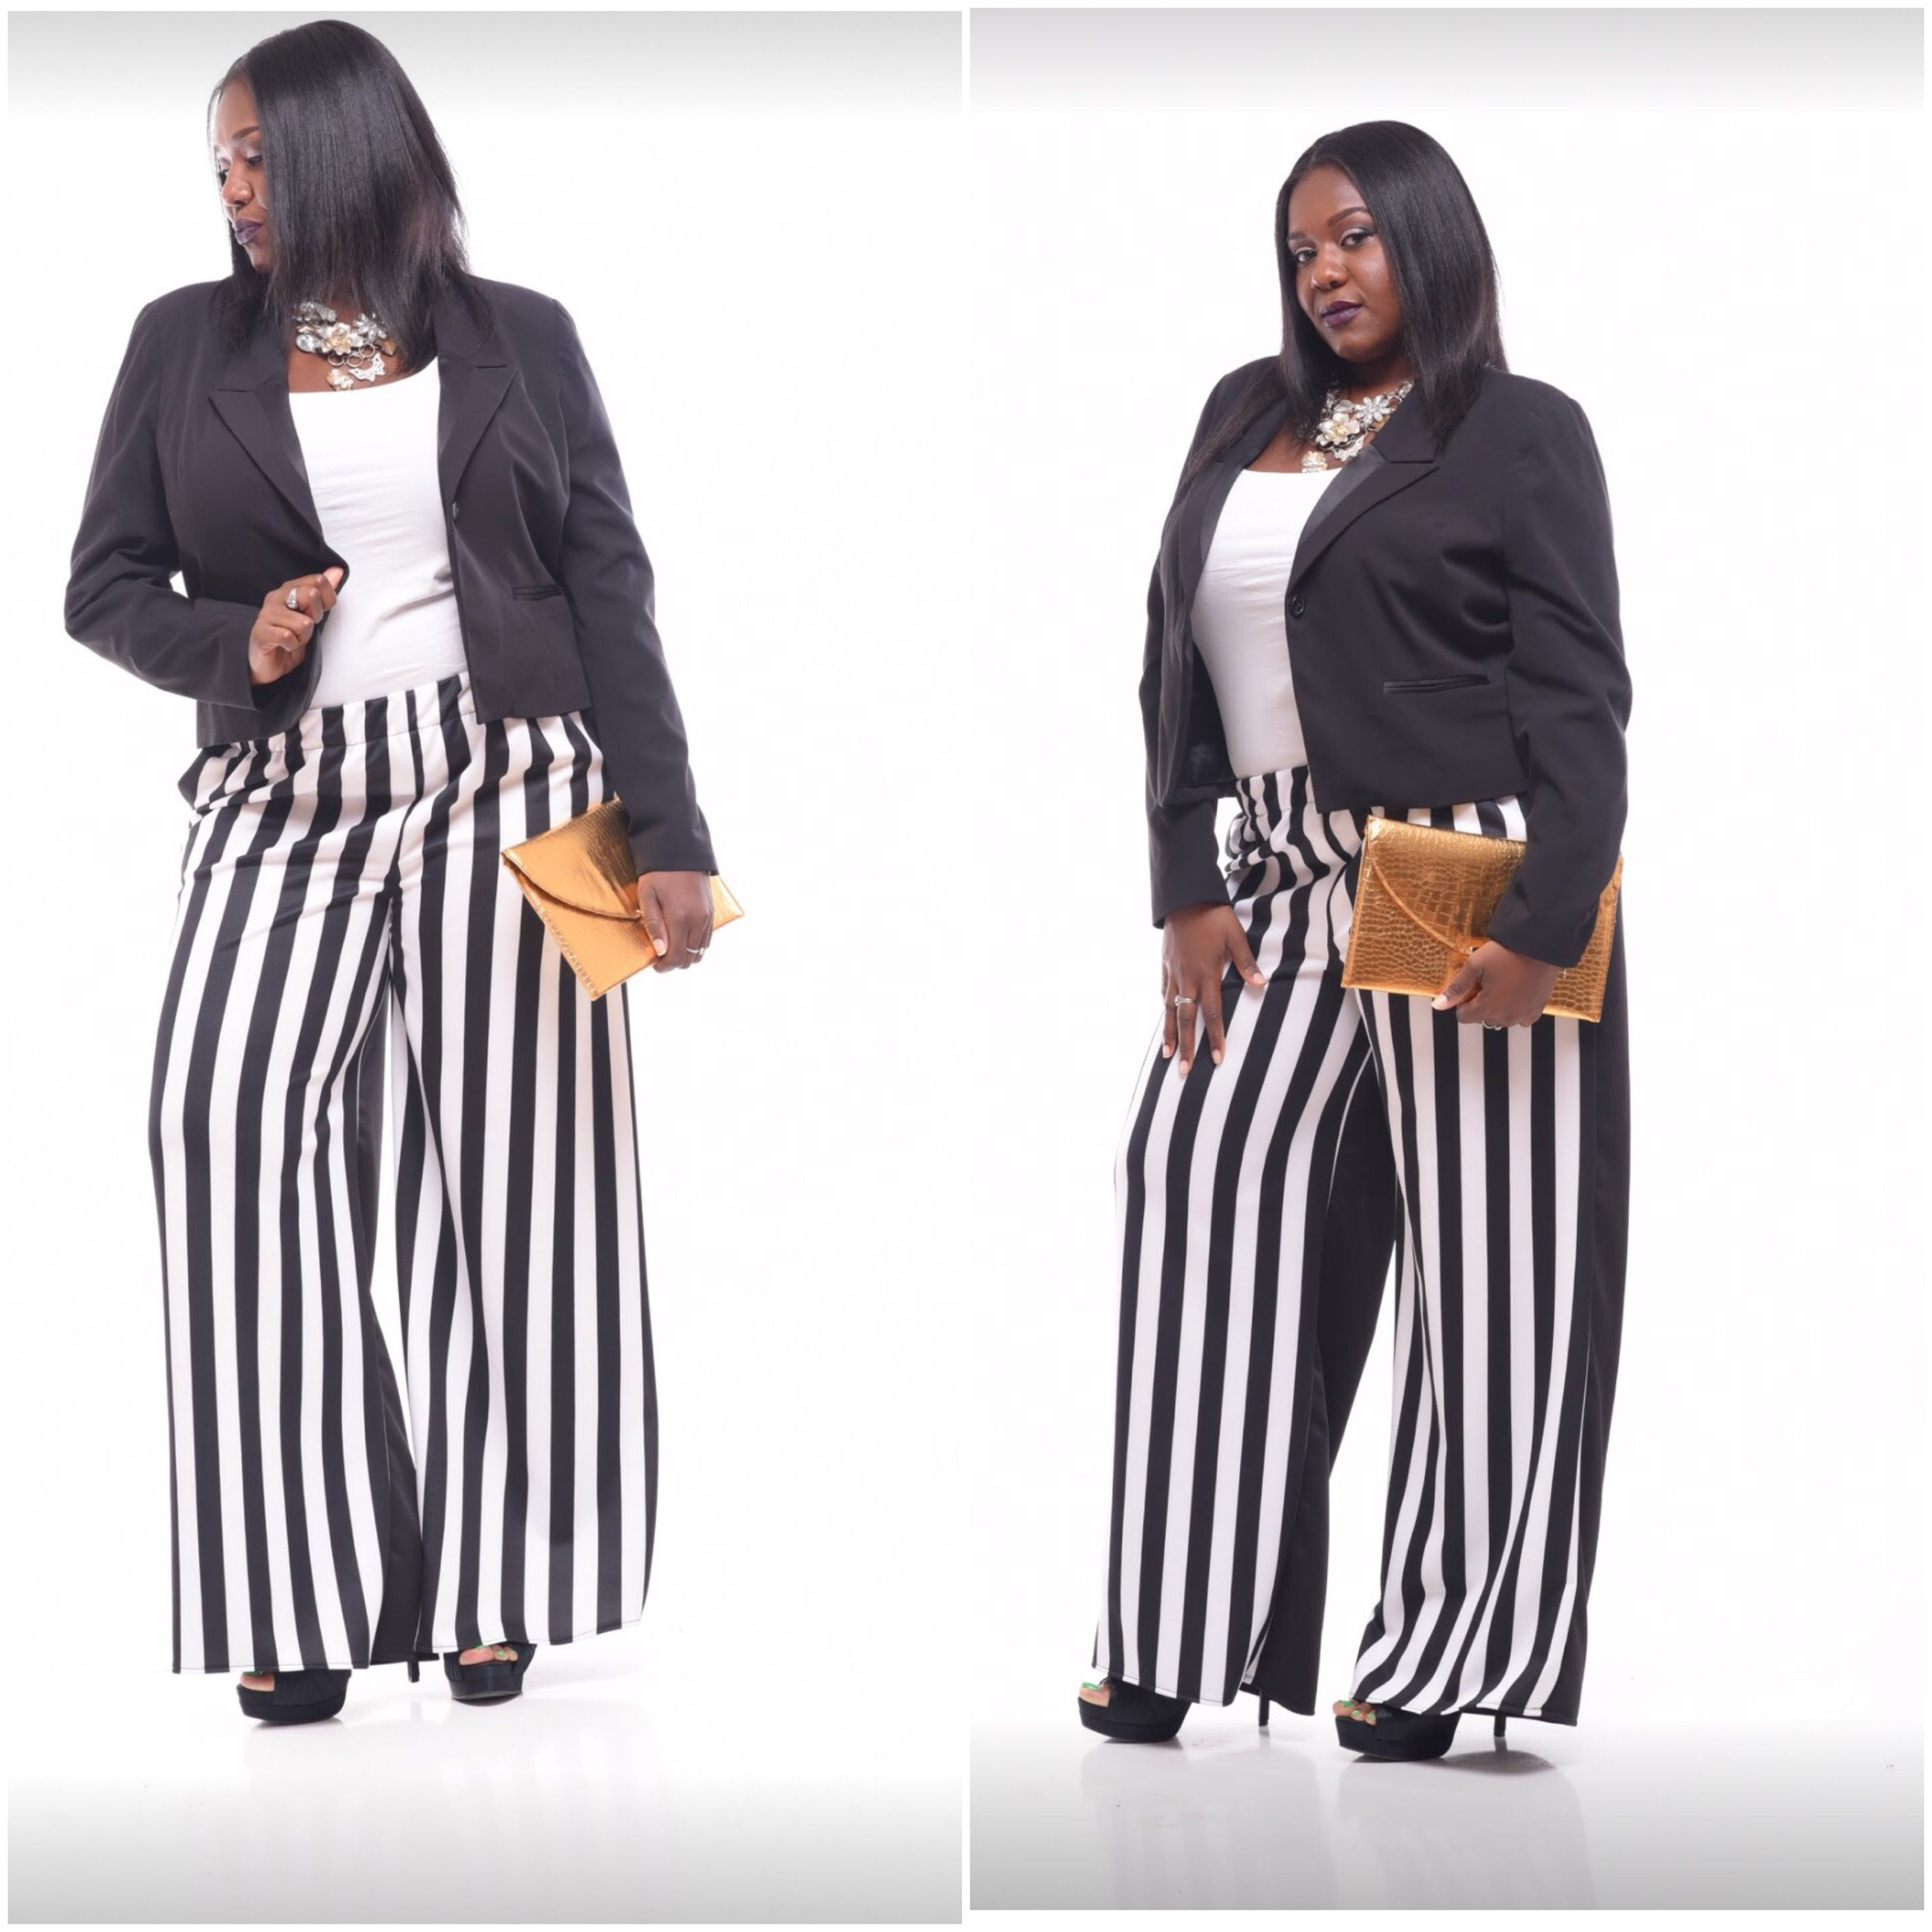 Pinstriped contrast pant